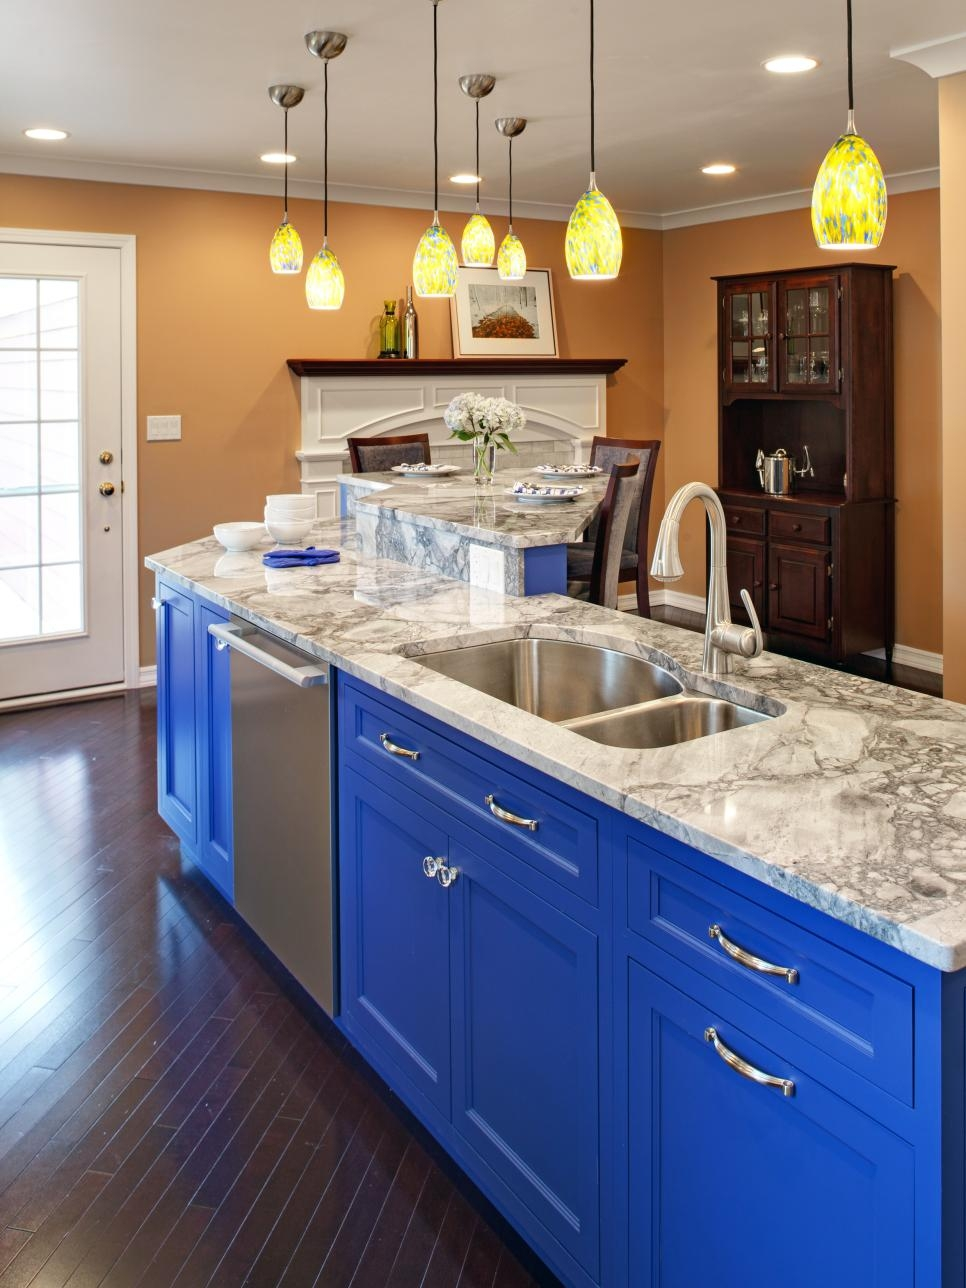 Pictures Of Kitchen Cabinet Colors